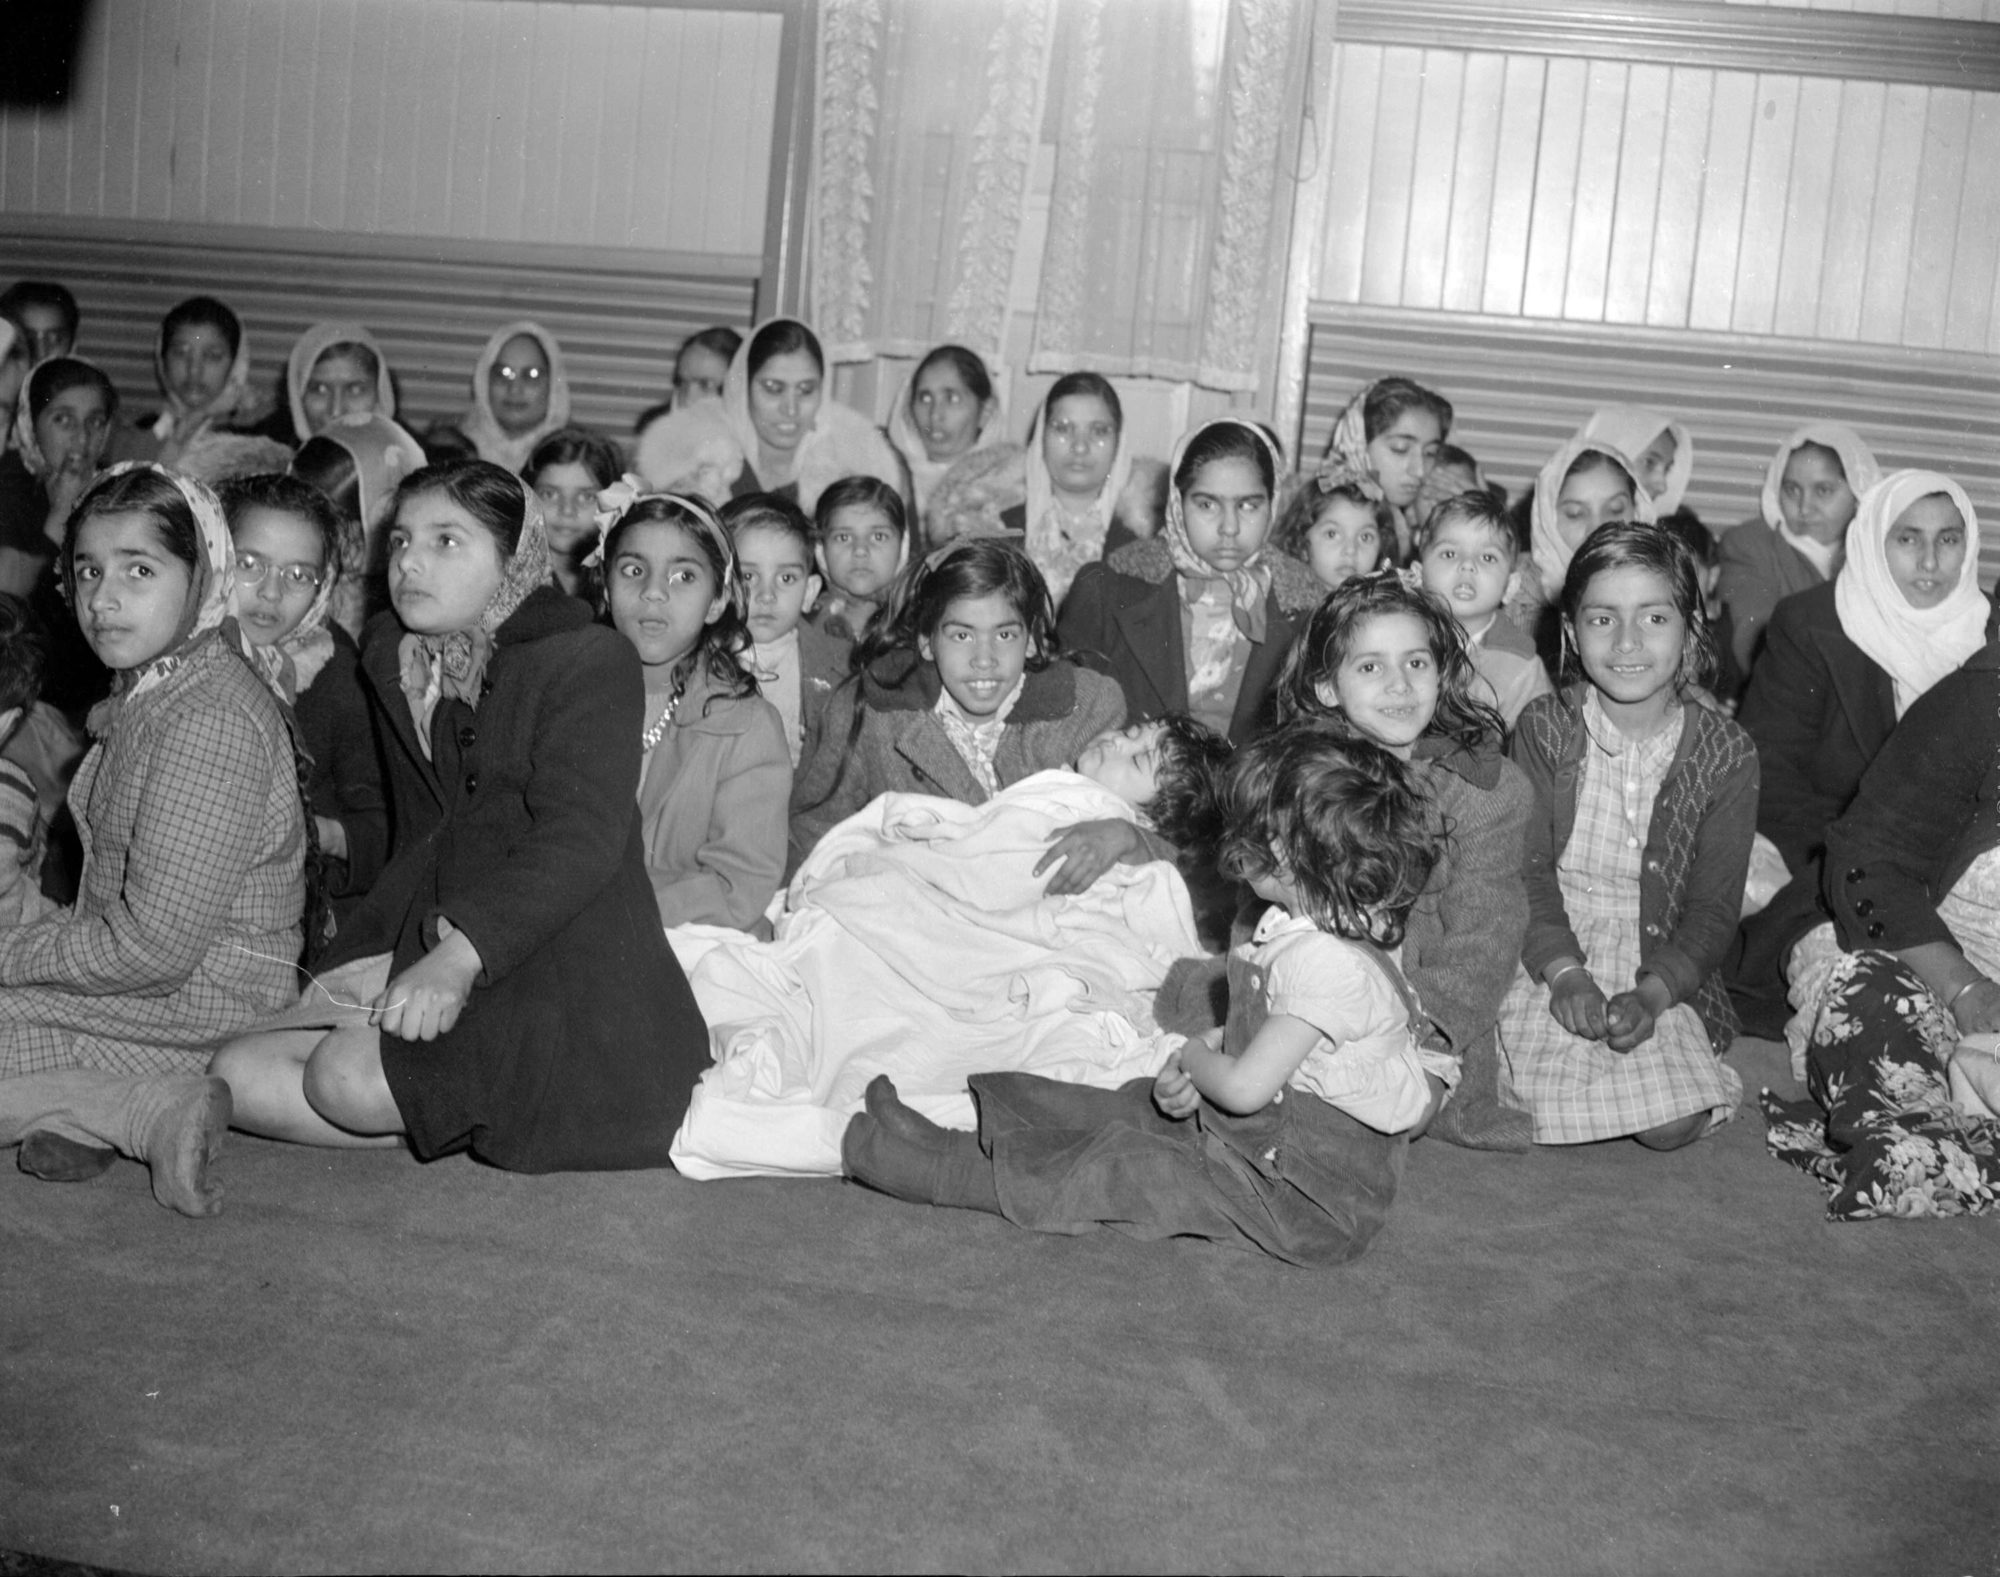 March 1945. Women & children inside the Khalsa Diwan Society of Vancouver. Photo by Don Coltman. Source: City of Vancouver Archives.